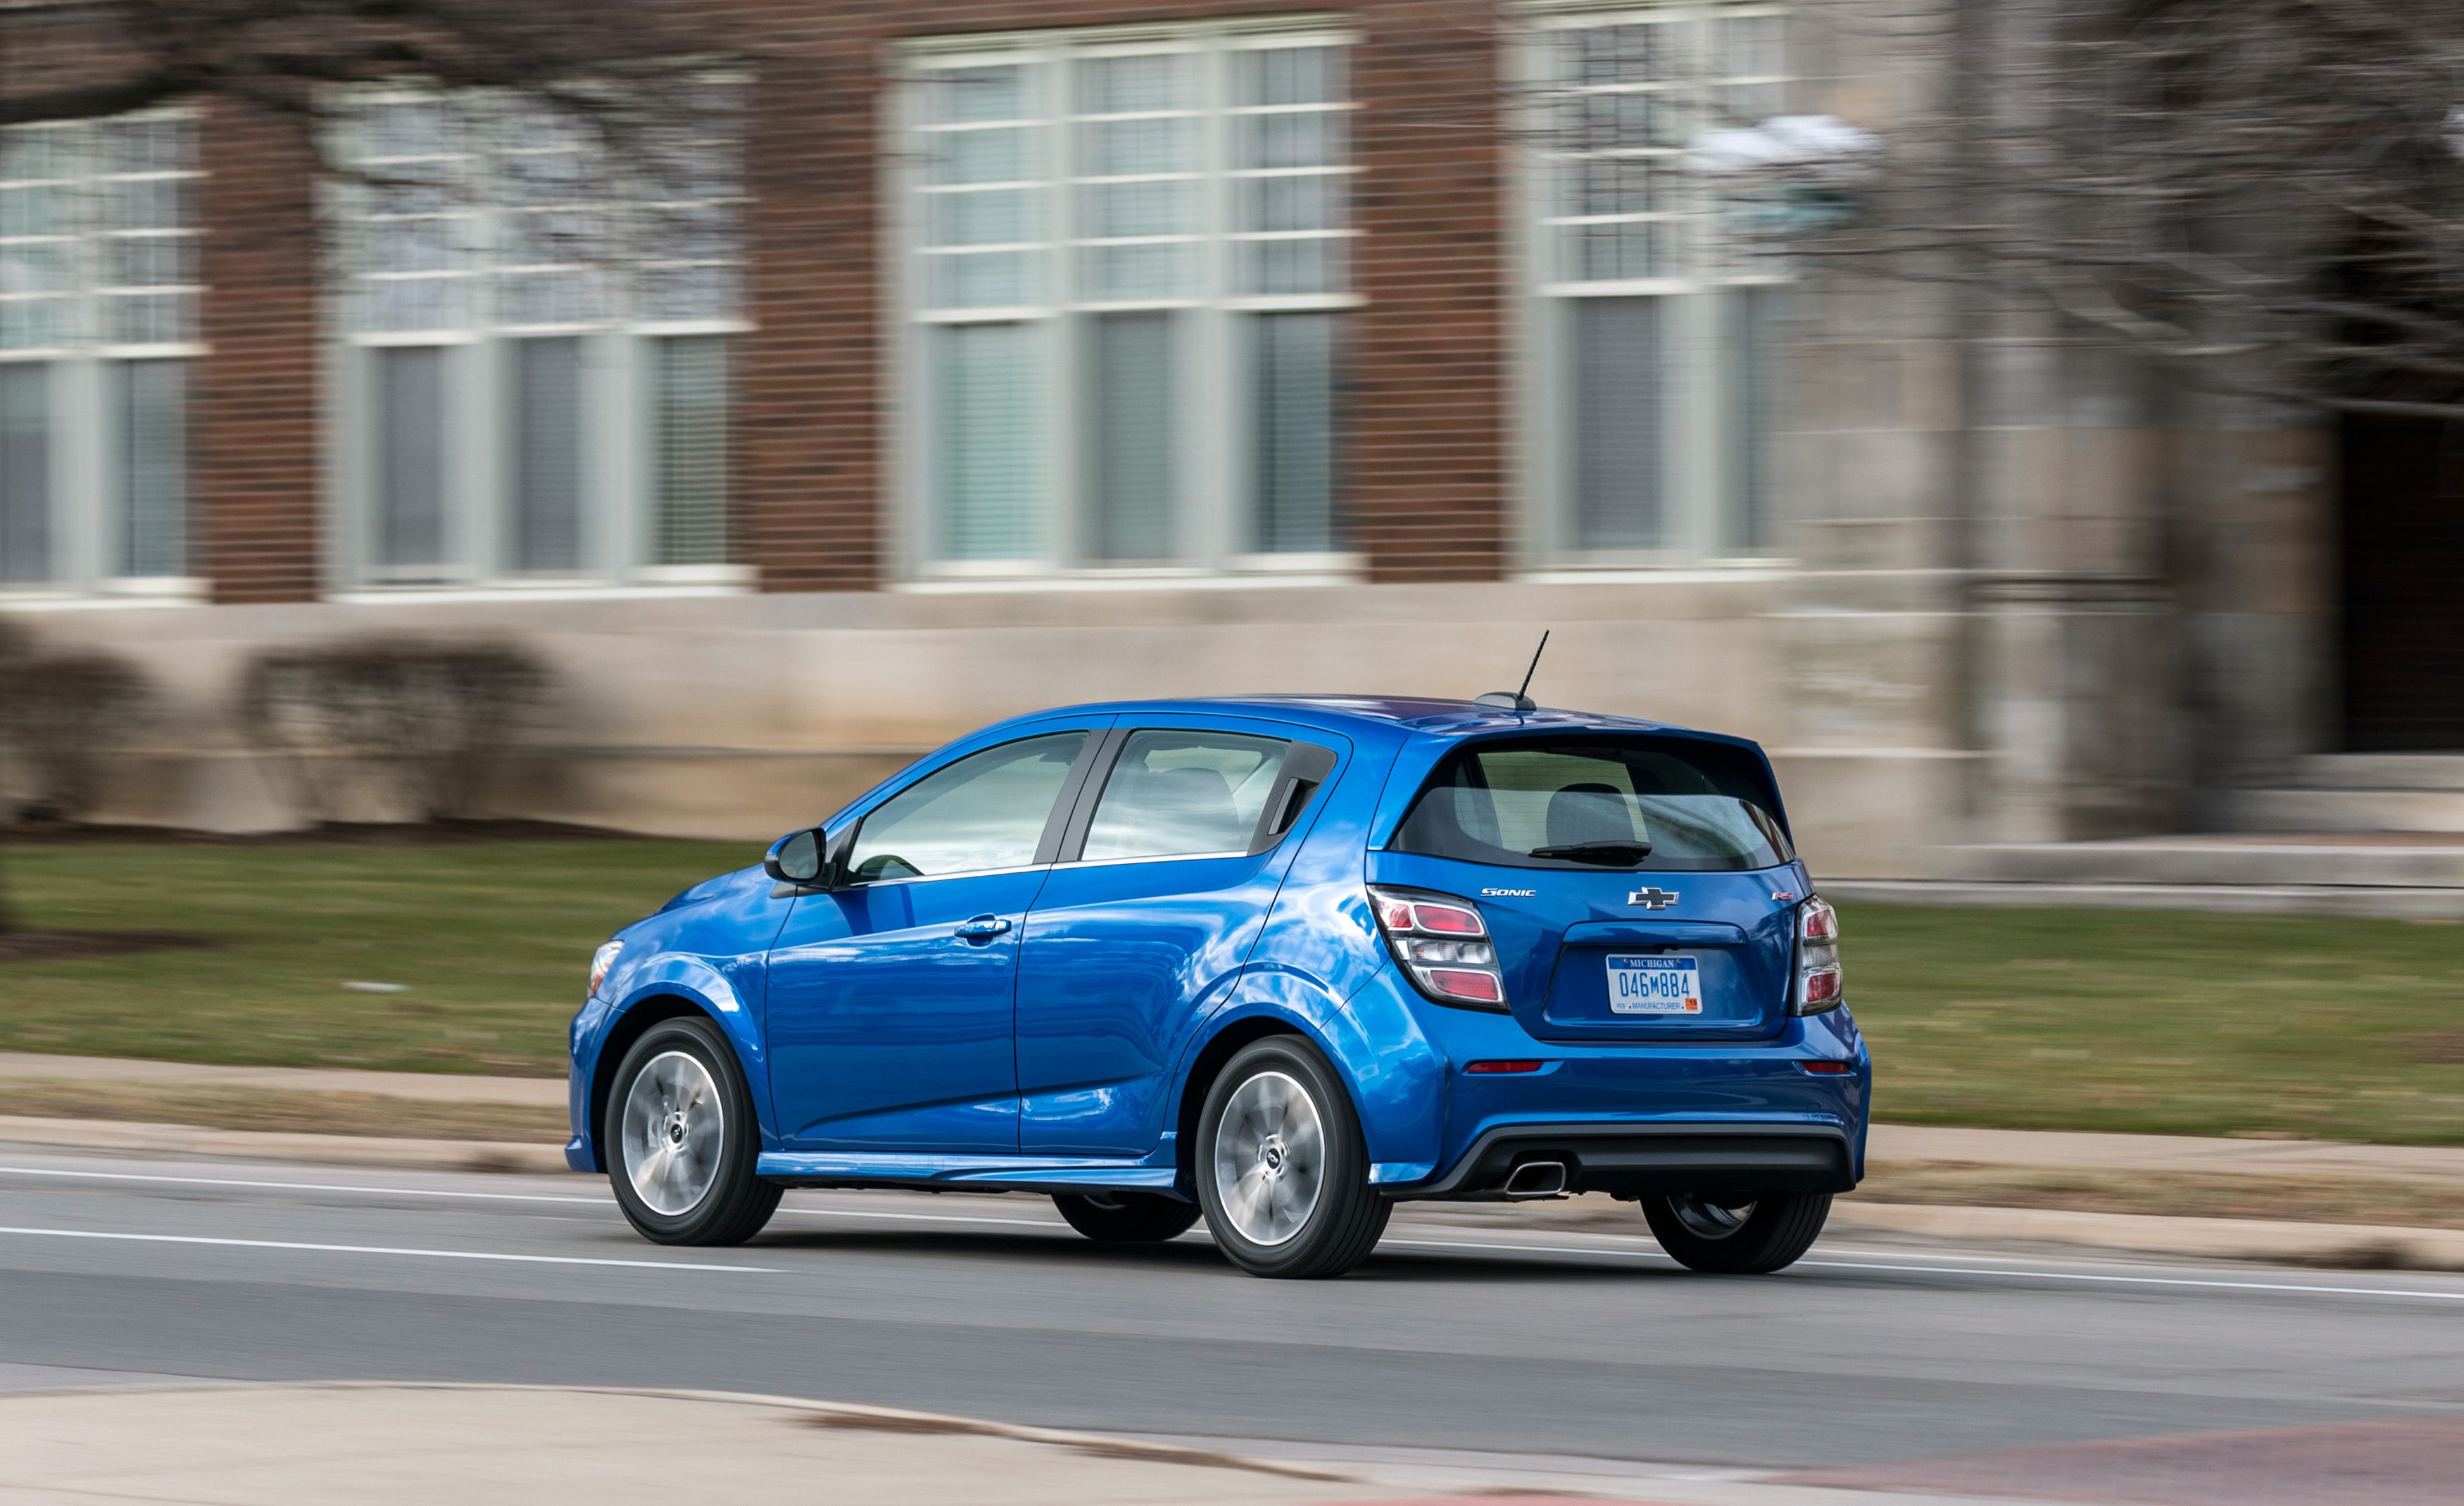 23 All New 2019 Chevy Sonic Images